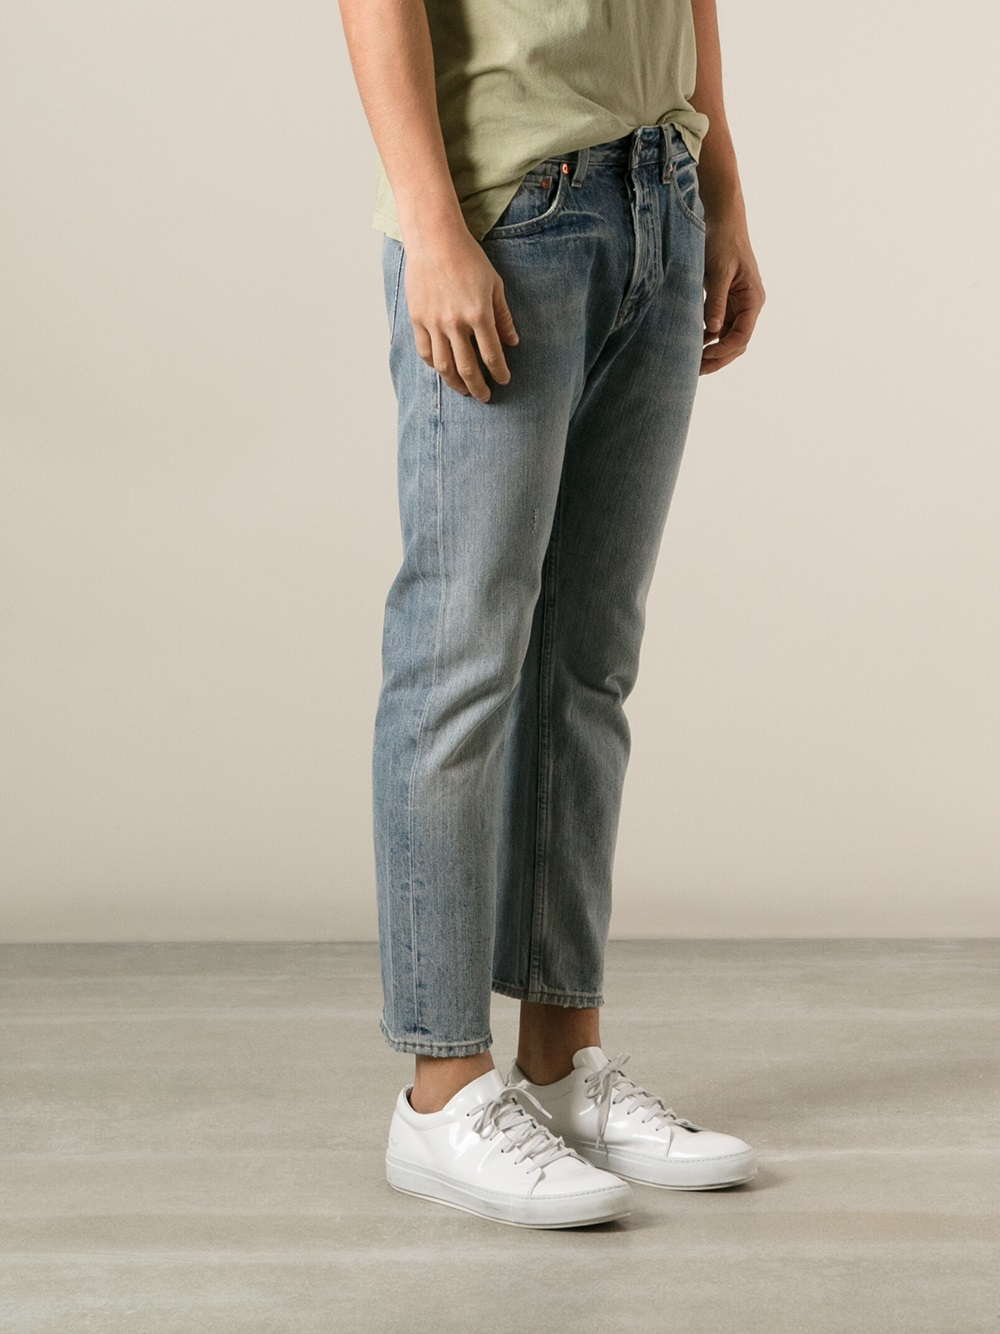 9e336efd5f04 you think cropped jeans or cropped pants look better? : streetwear